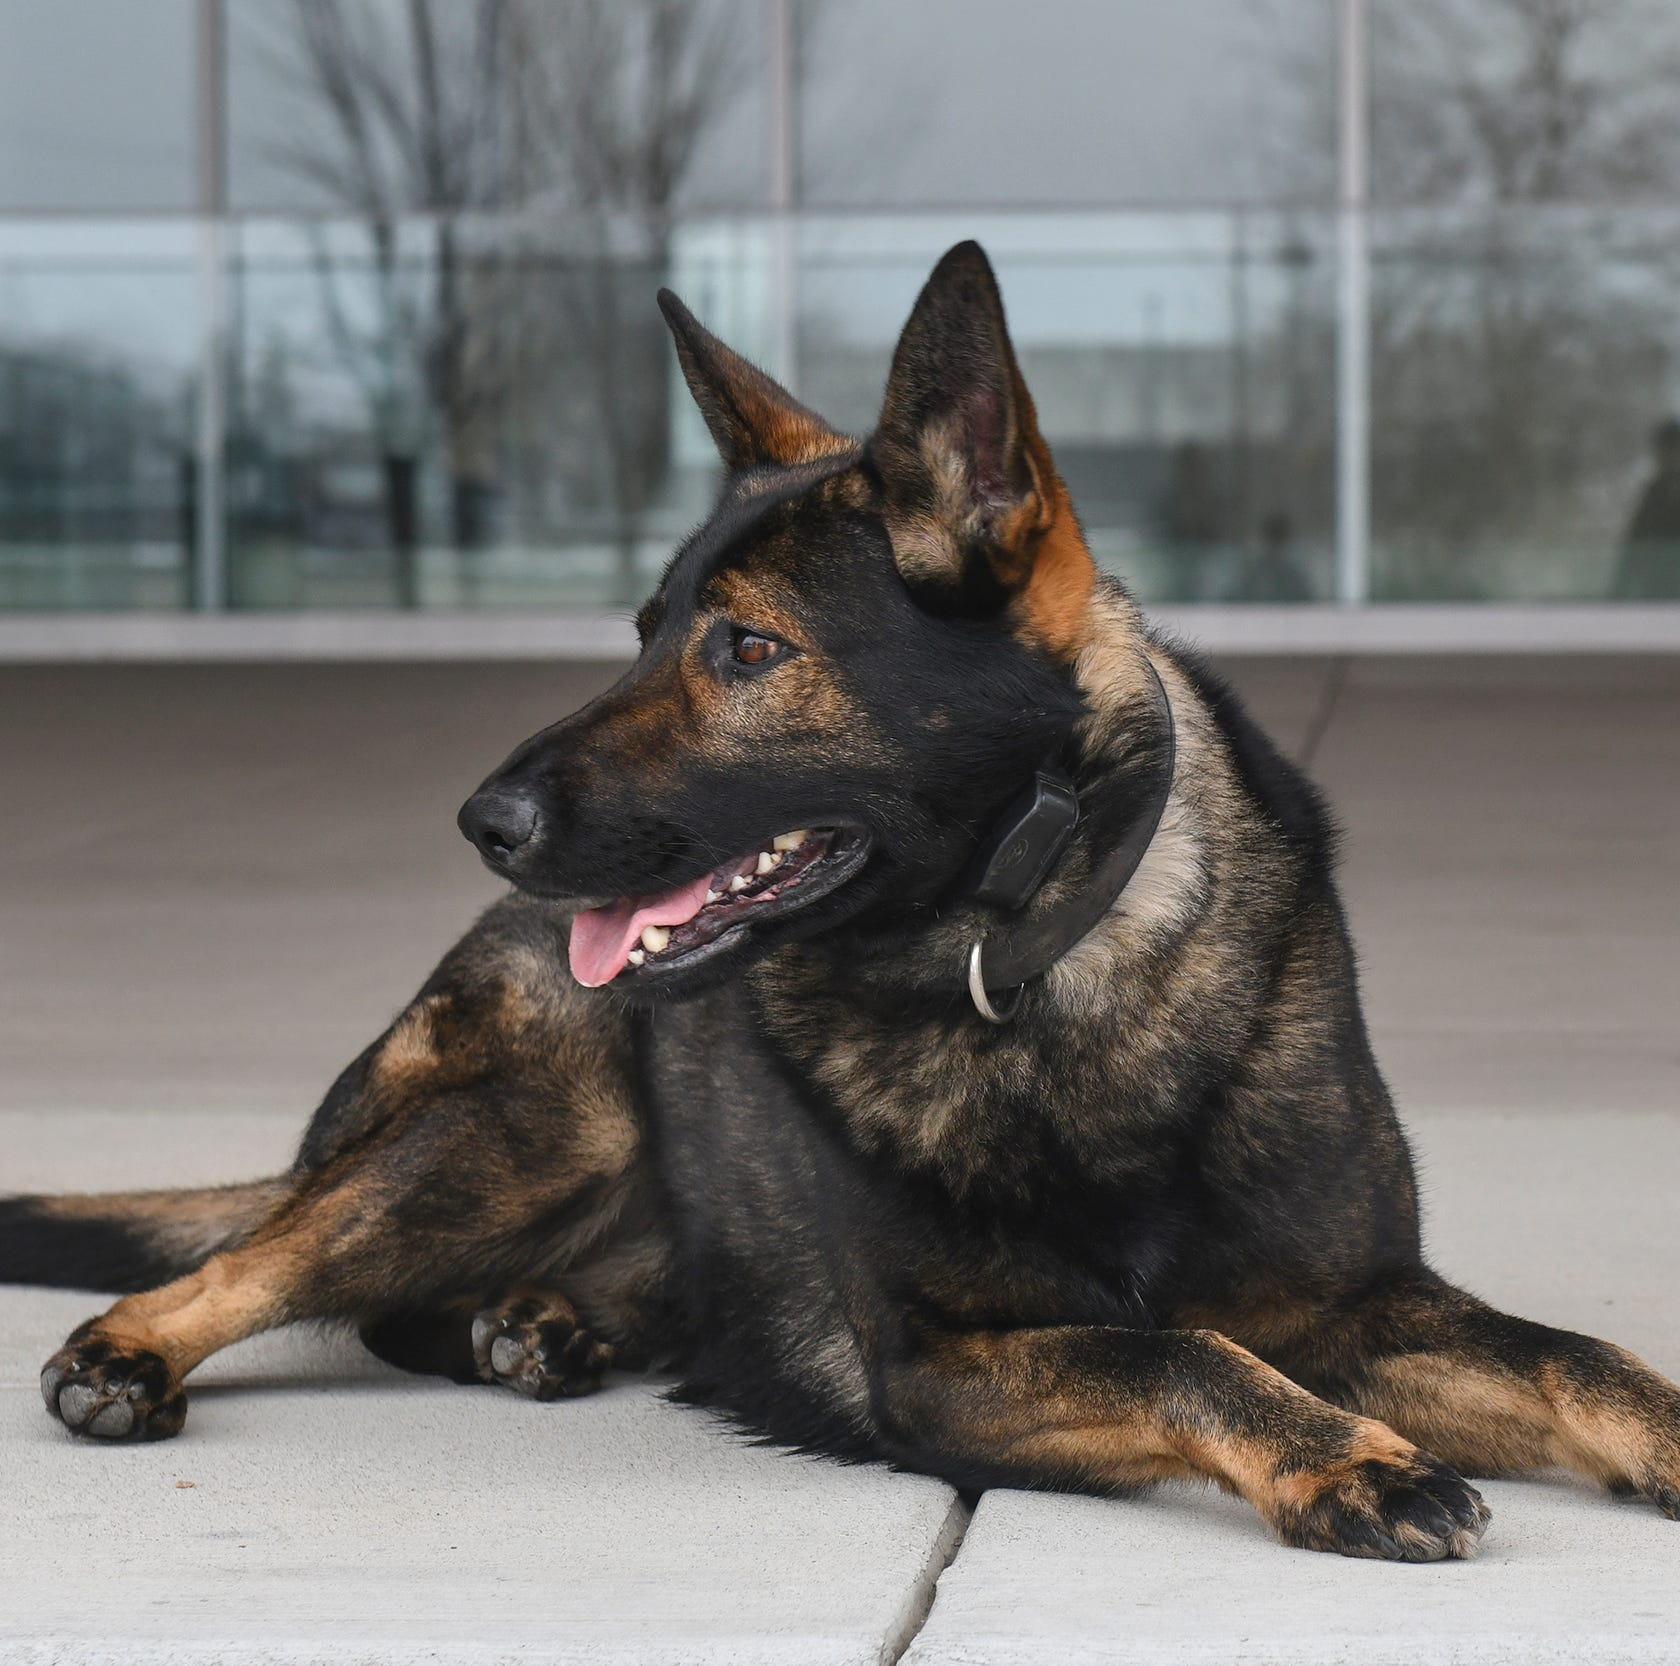 St. Cloud police K-9s deployed hundreds of times in 2018, found 16 pounds of drugs